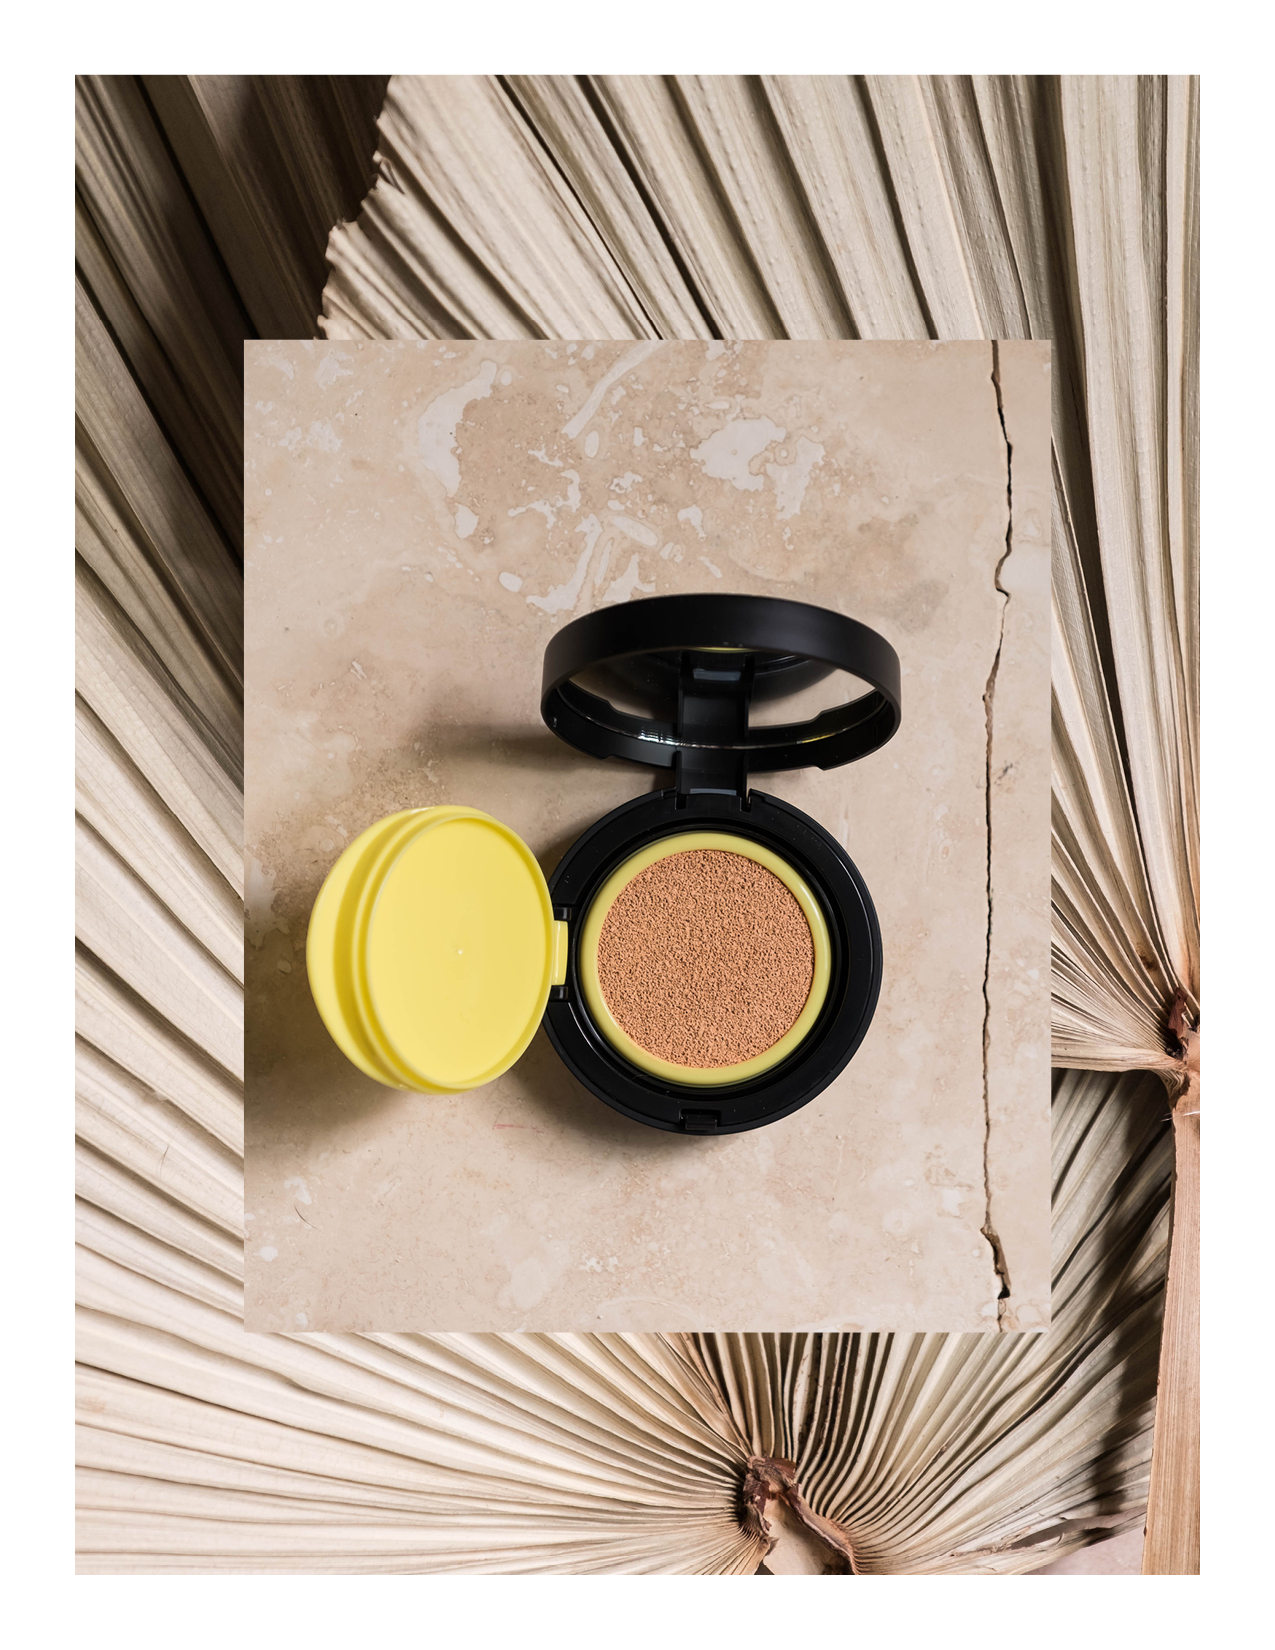 ROSE & IVY Journal Our Favorite Sunscreens with a Dose of Color Belif Moisture Bomb